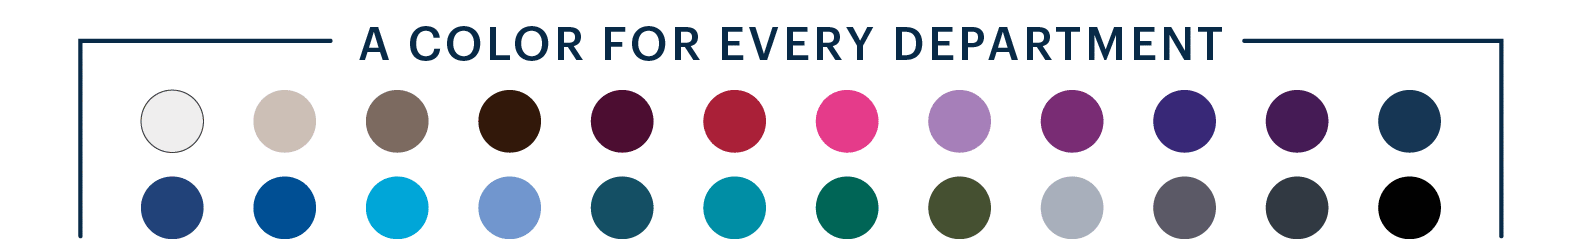 Color for every department